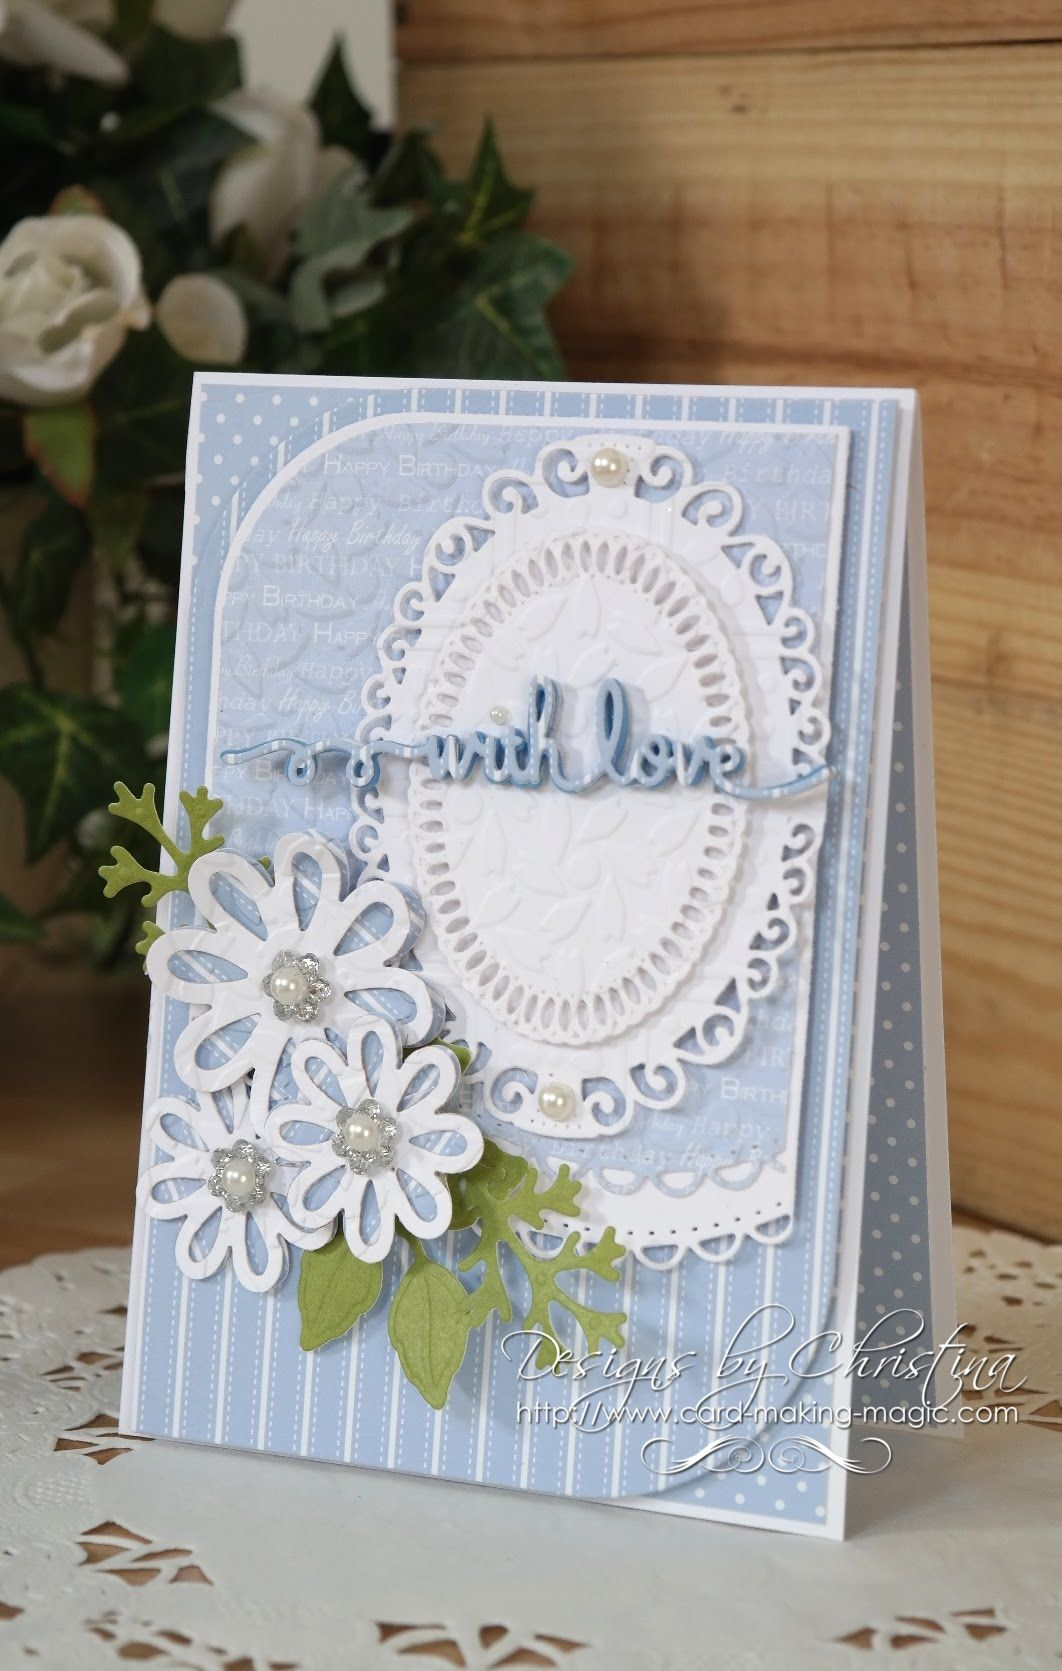 Attractive Card Making Magic Ideas Part - 6: More Info And Ideas Can Be Found At Http://www.card-